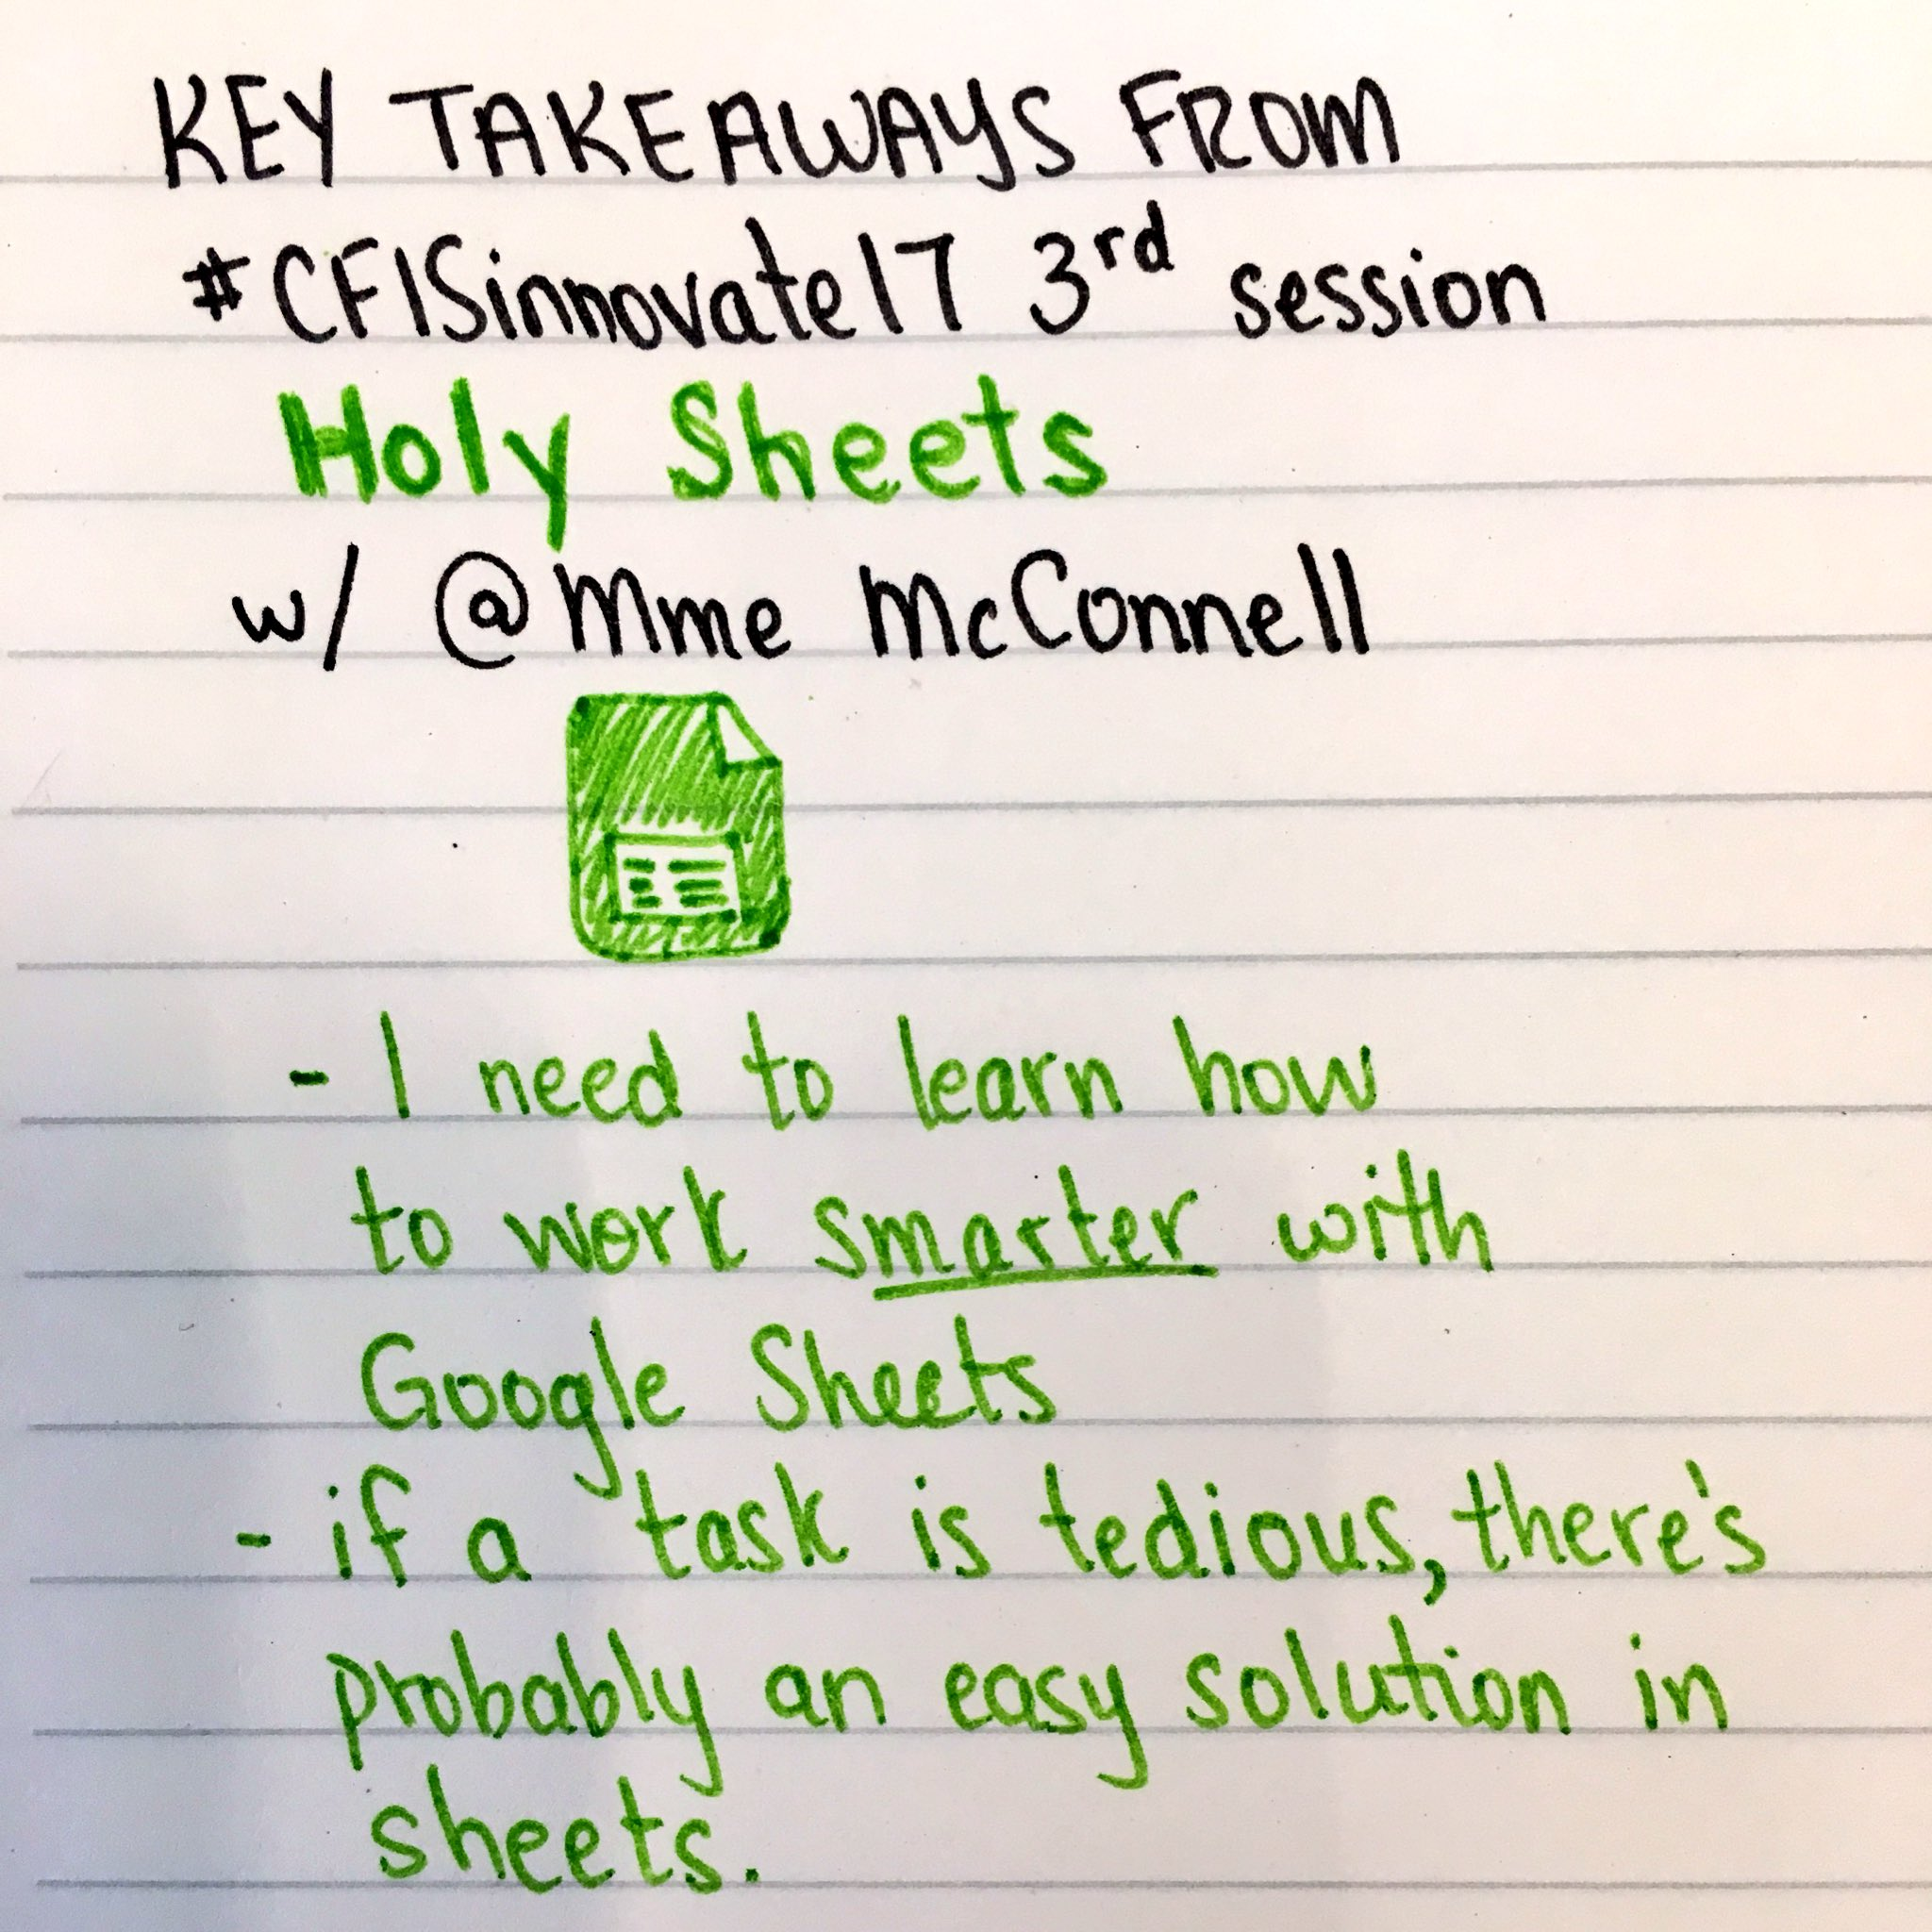 Recap 3 of #CFISinnovate17. @MmeMcConnell is the go-to person for all things assessment in #GoogleSheets. I need to use it more! https://t.co/vT85bKkuEo